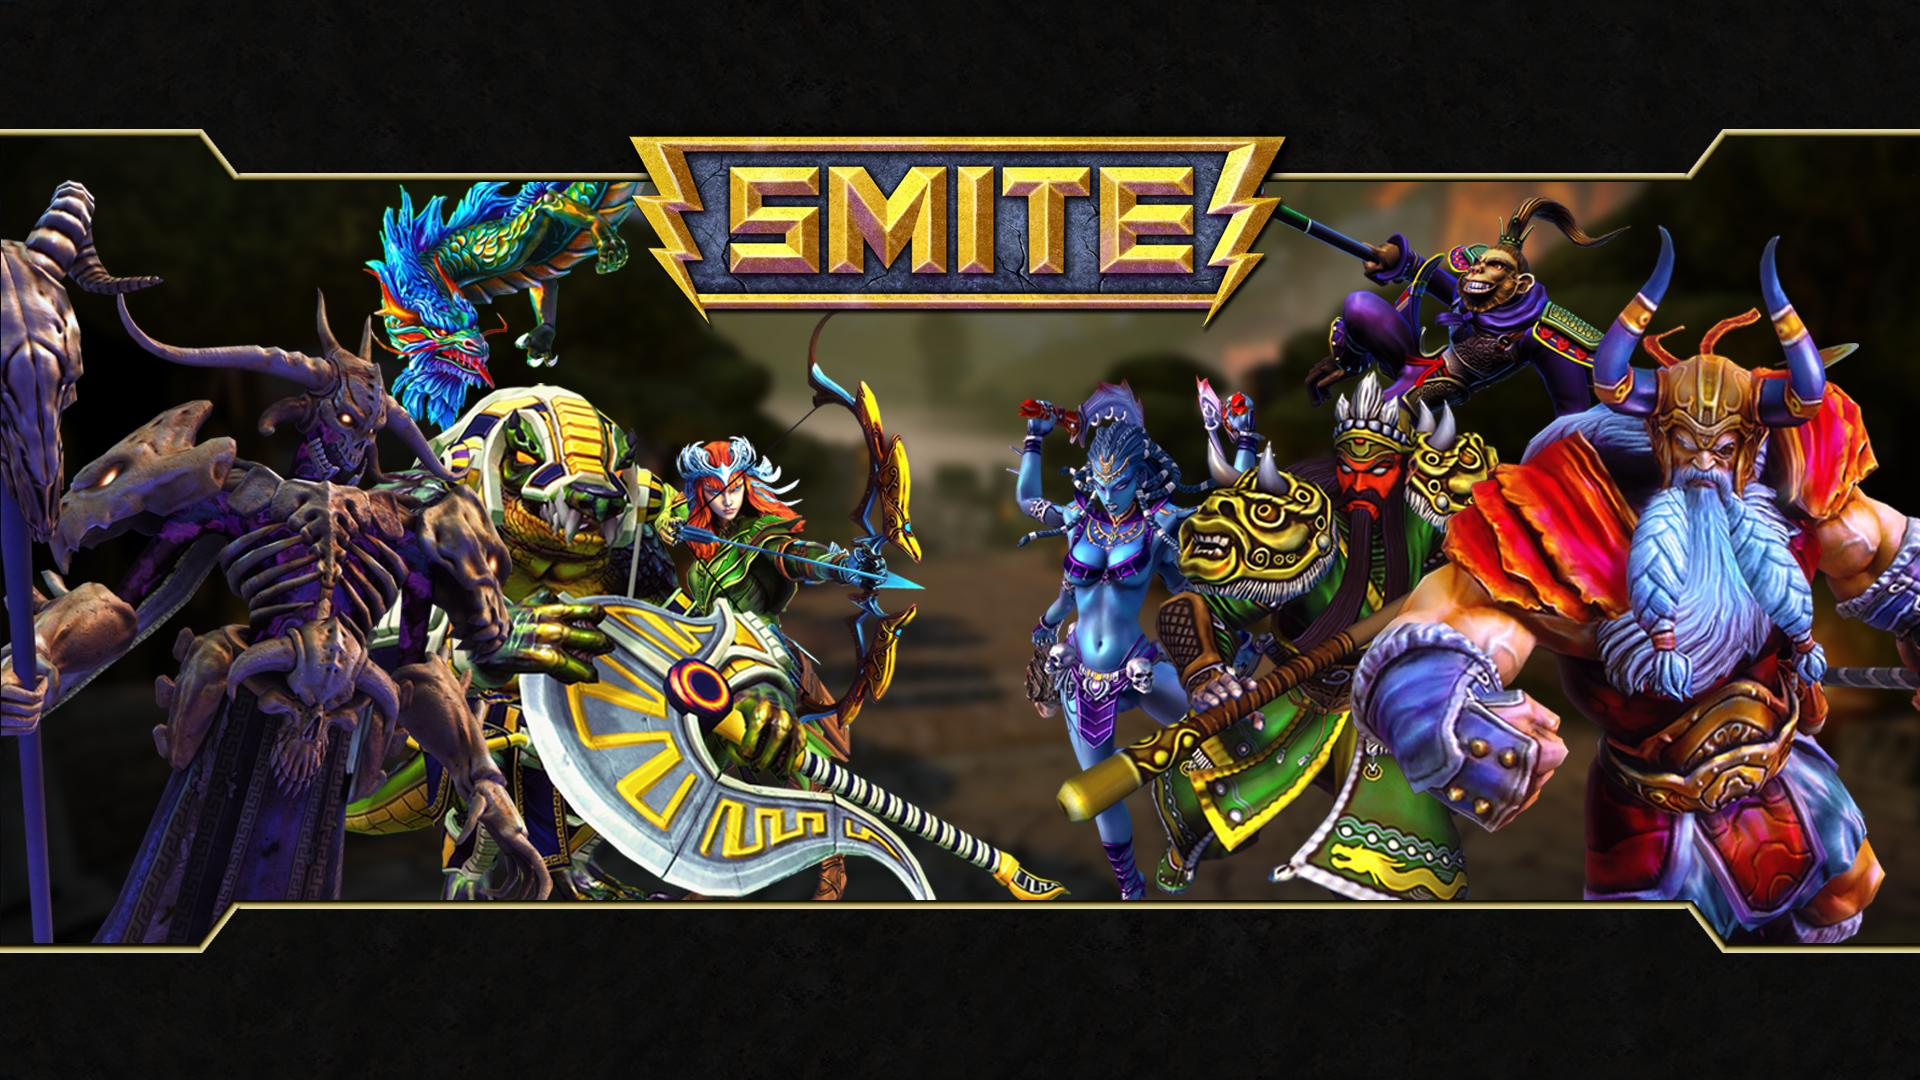 To Celebrate Official Launch, SMITE Announces $200,000 Tournament